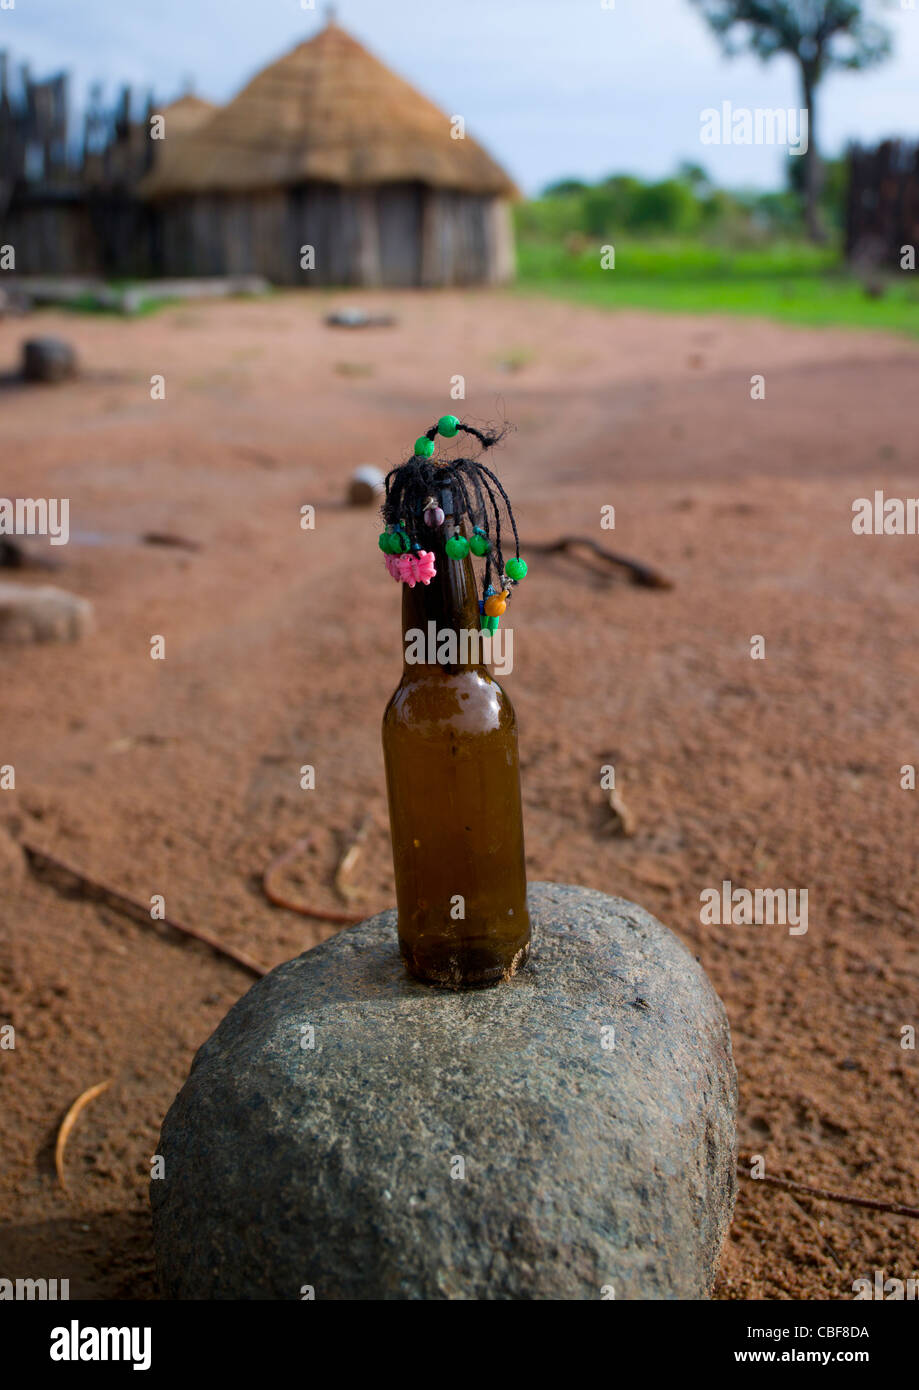 Mwila Doll Made With A Bottle Of Beer, Angola - Stock Image